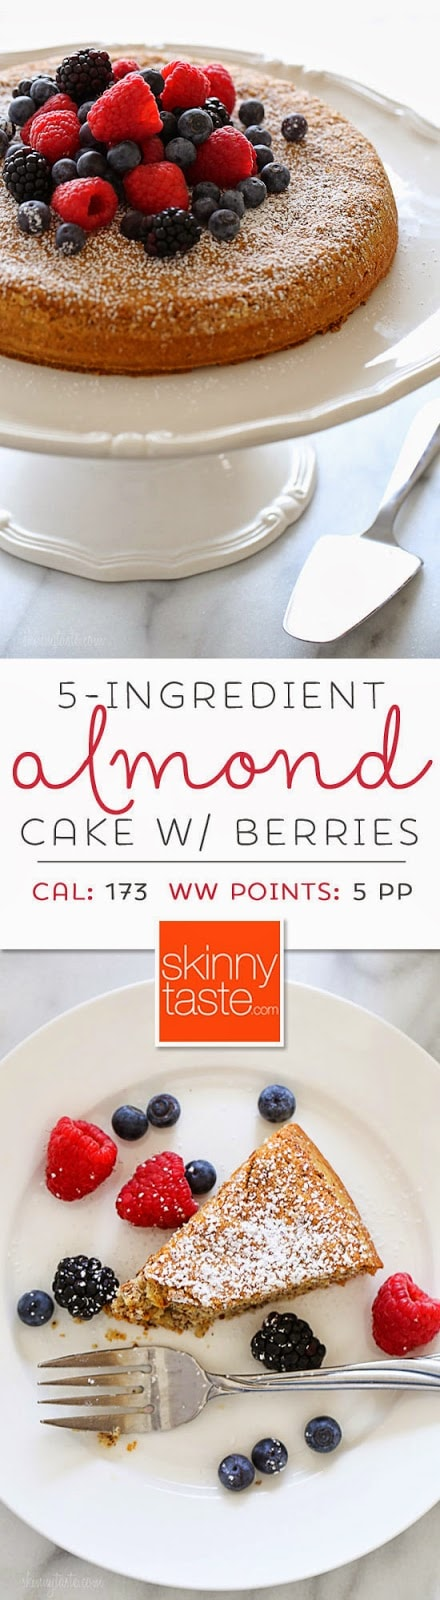 5-Ingredient Almond Cake with Fresh Berries (gluten-free)